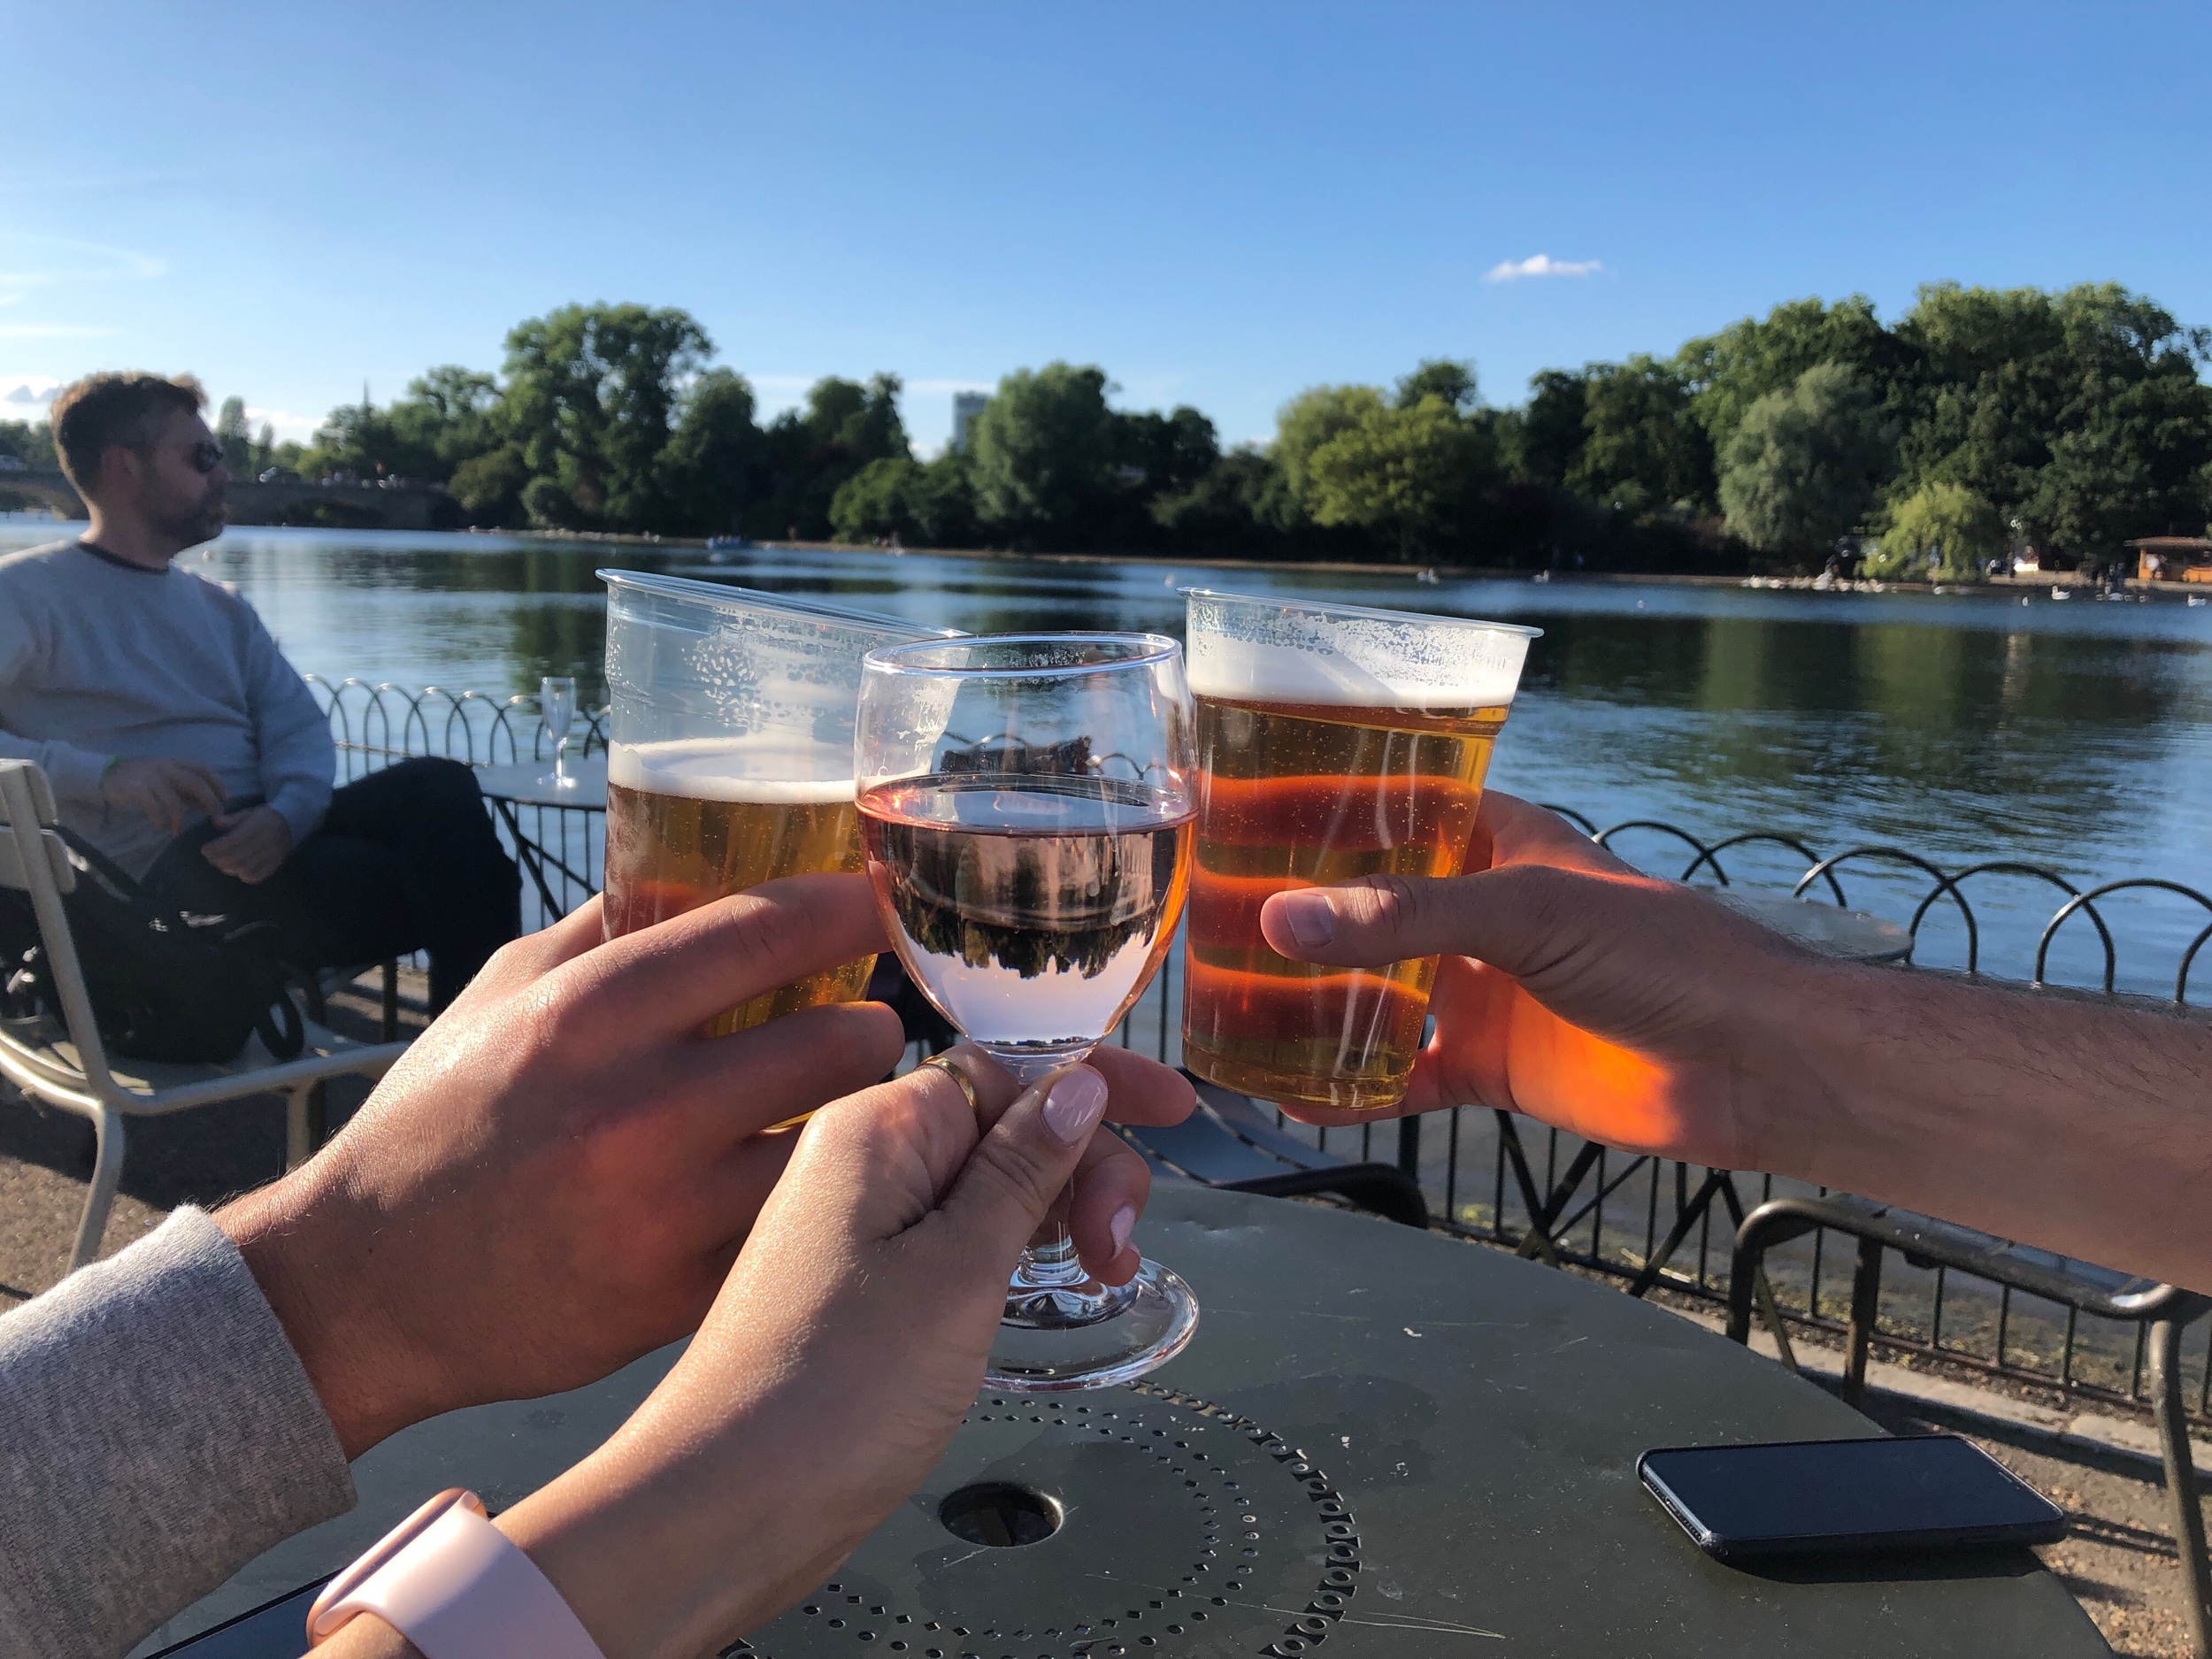 Toasting to a sunny day in London! Taken in Hyde Park on our way to the Kensington Palace.